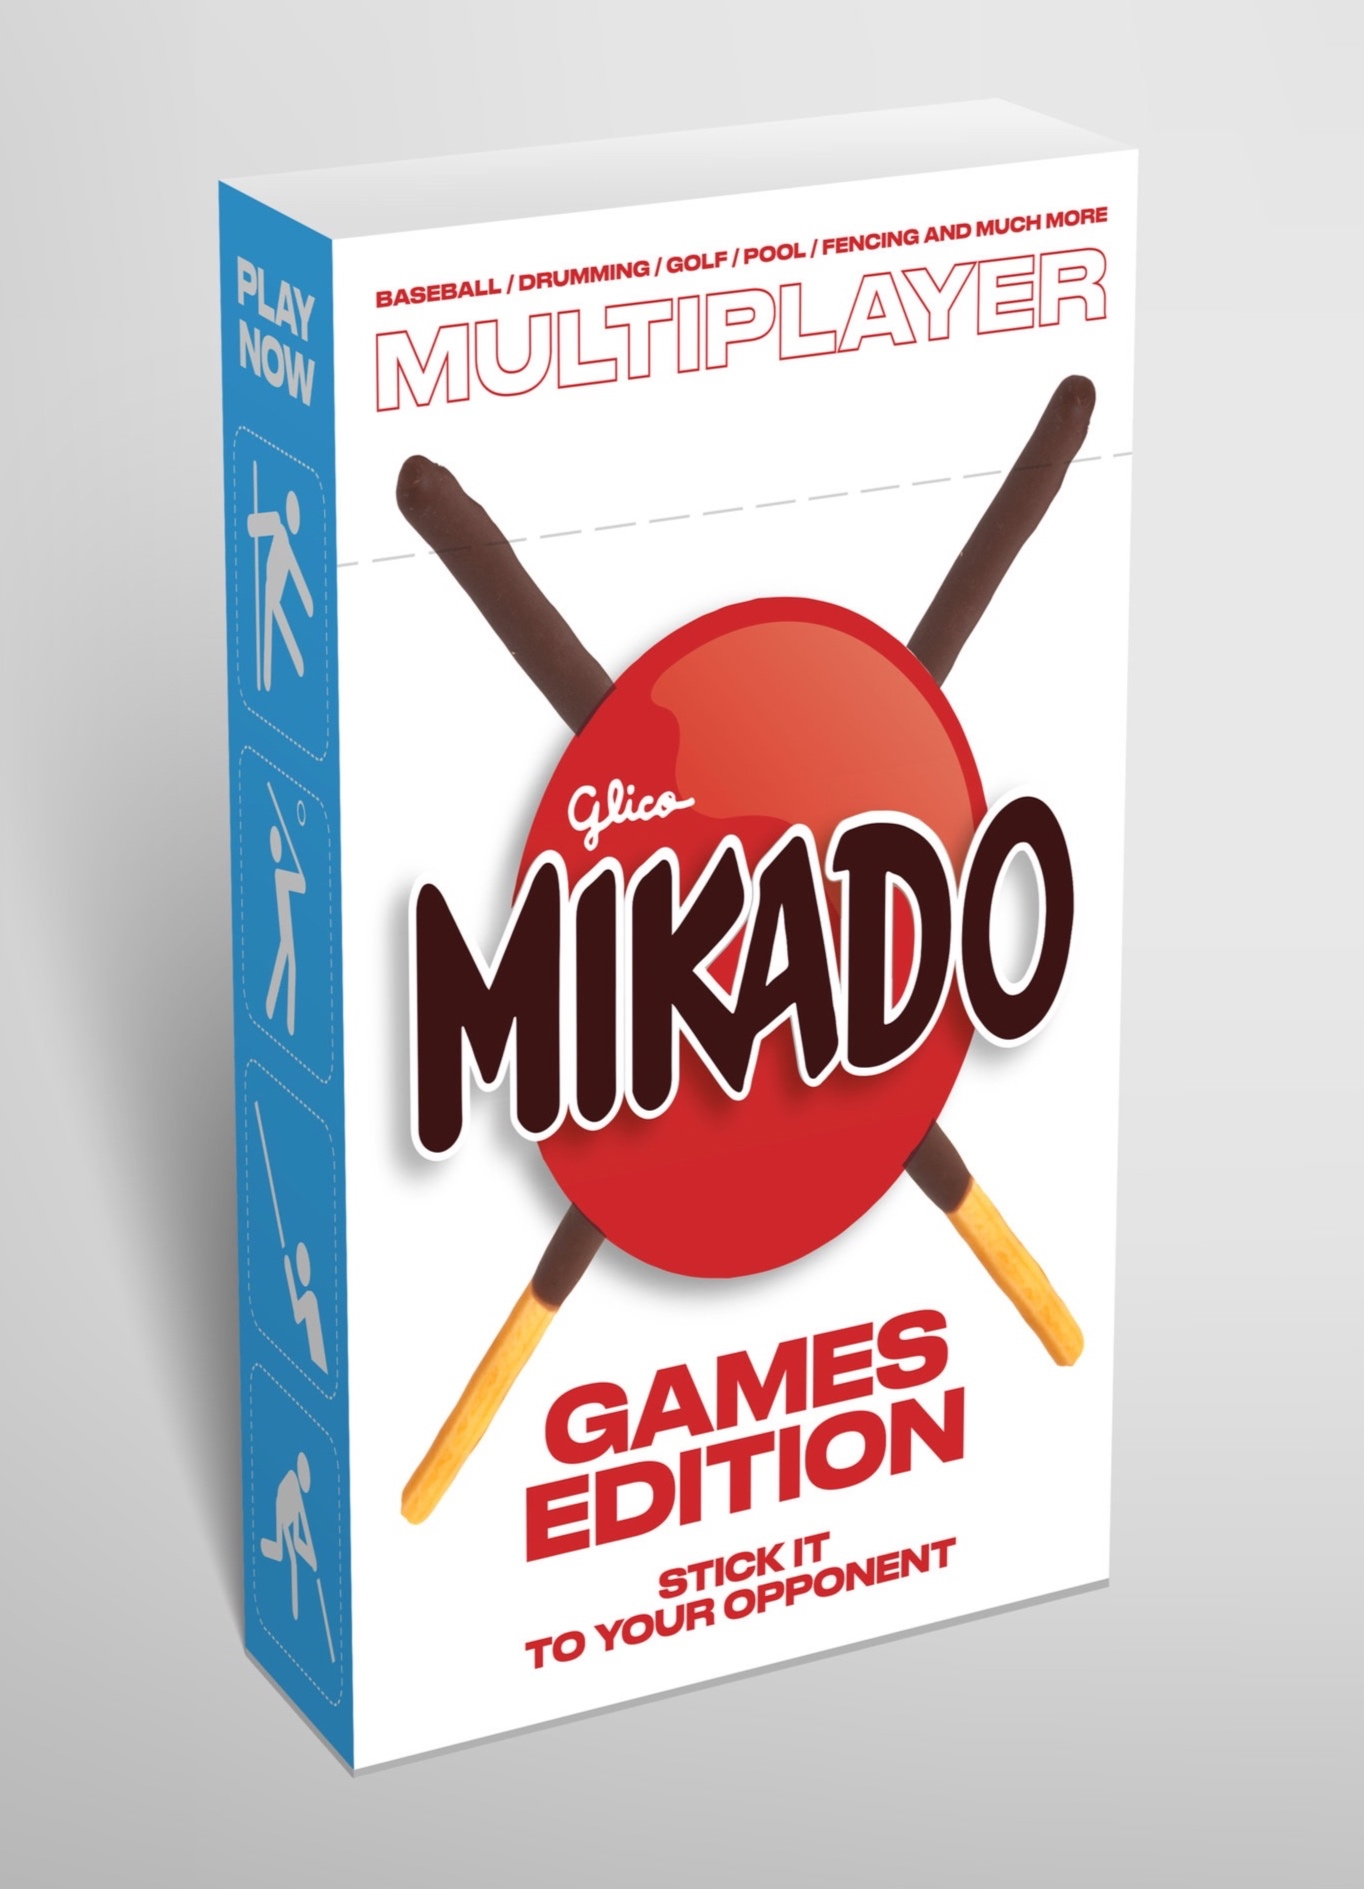 Limited edition games box.